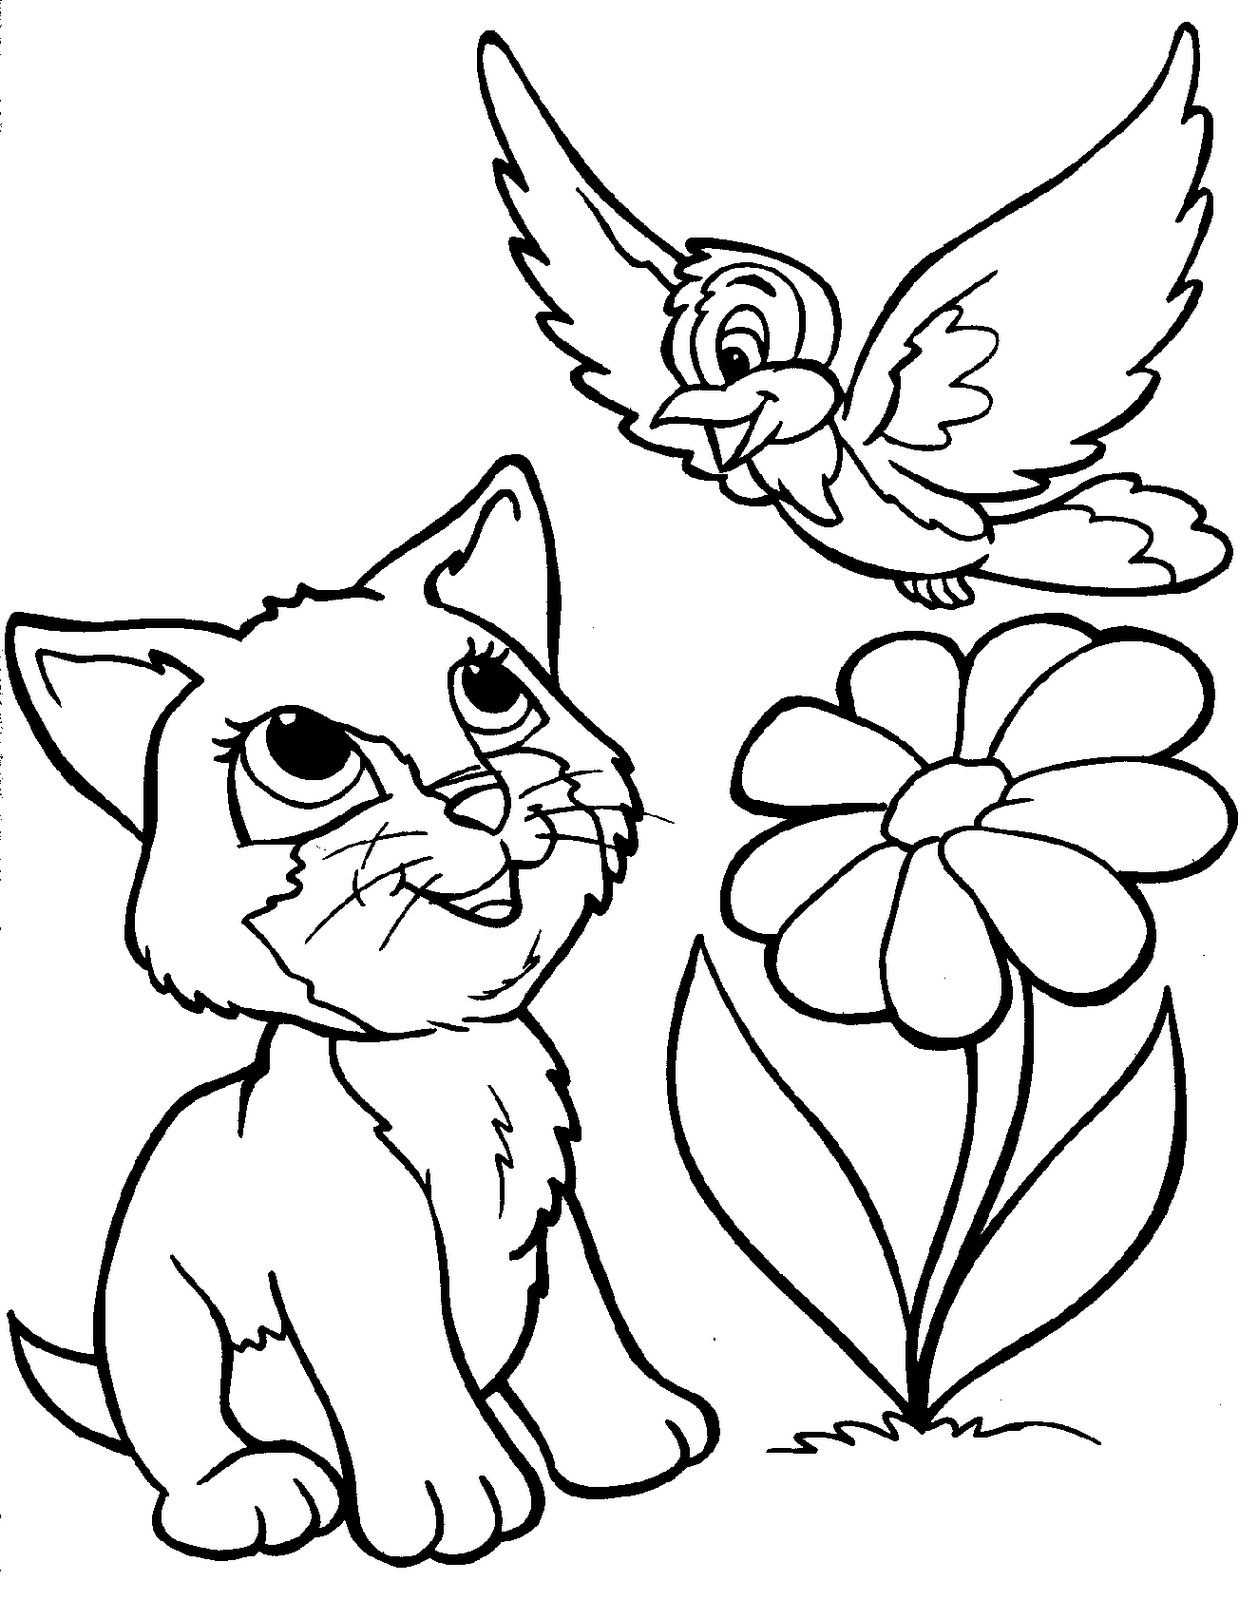 Cat In The Hat Coloring Pages Free Printable   Animal Coloring - Free Printable Animal Coloring Pages